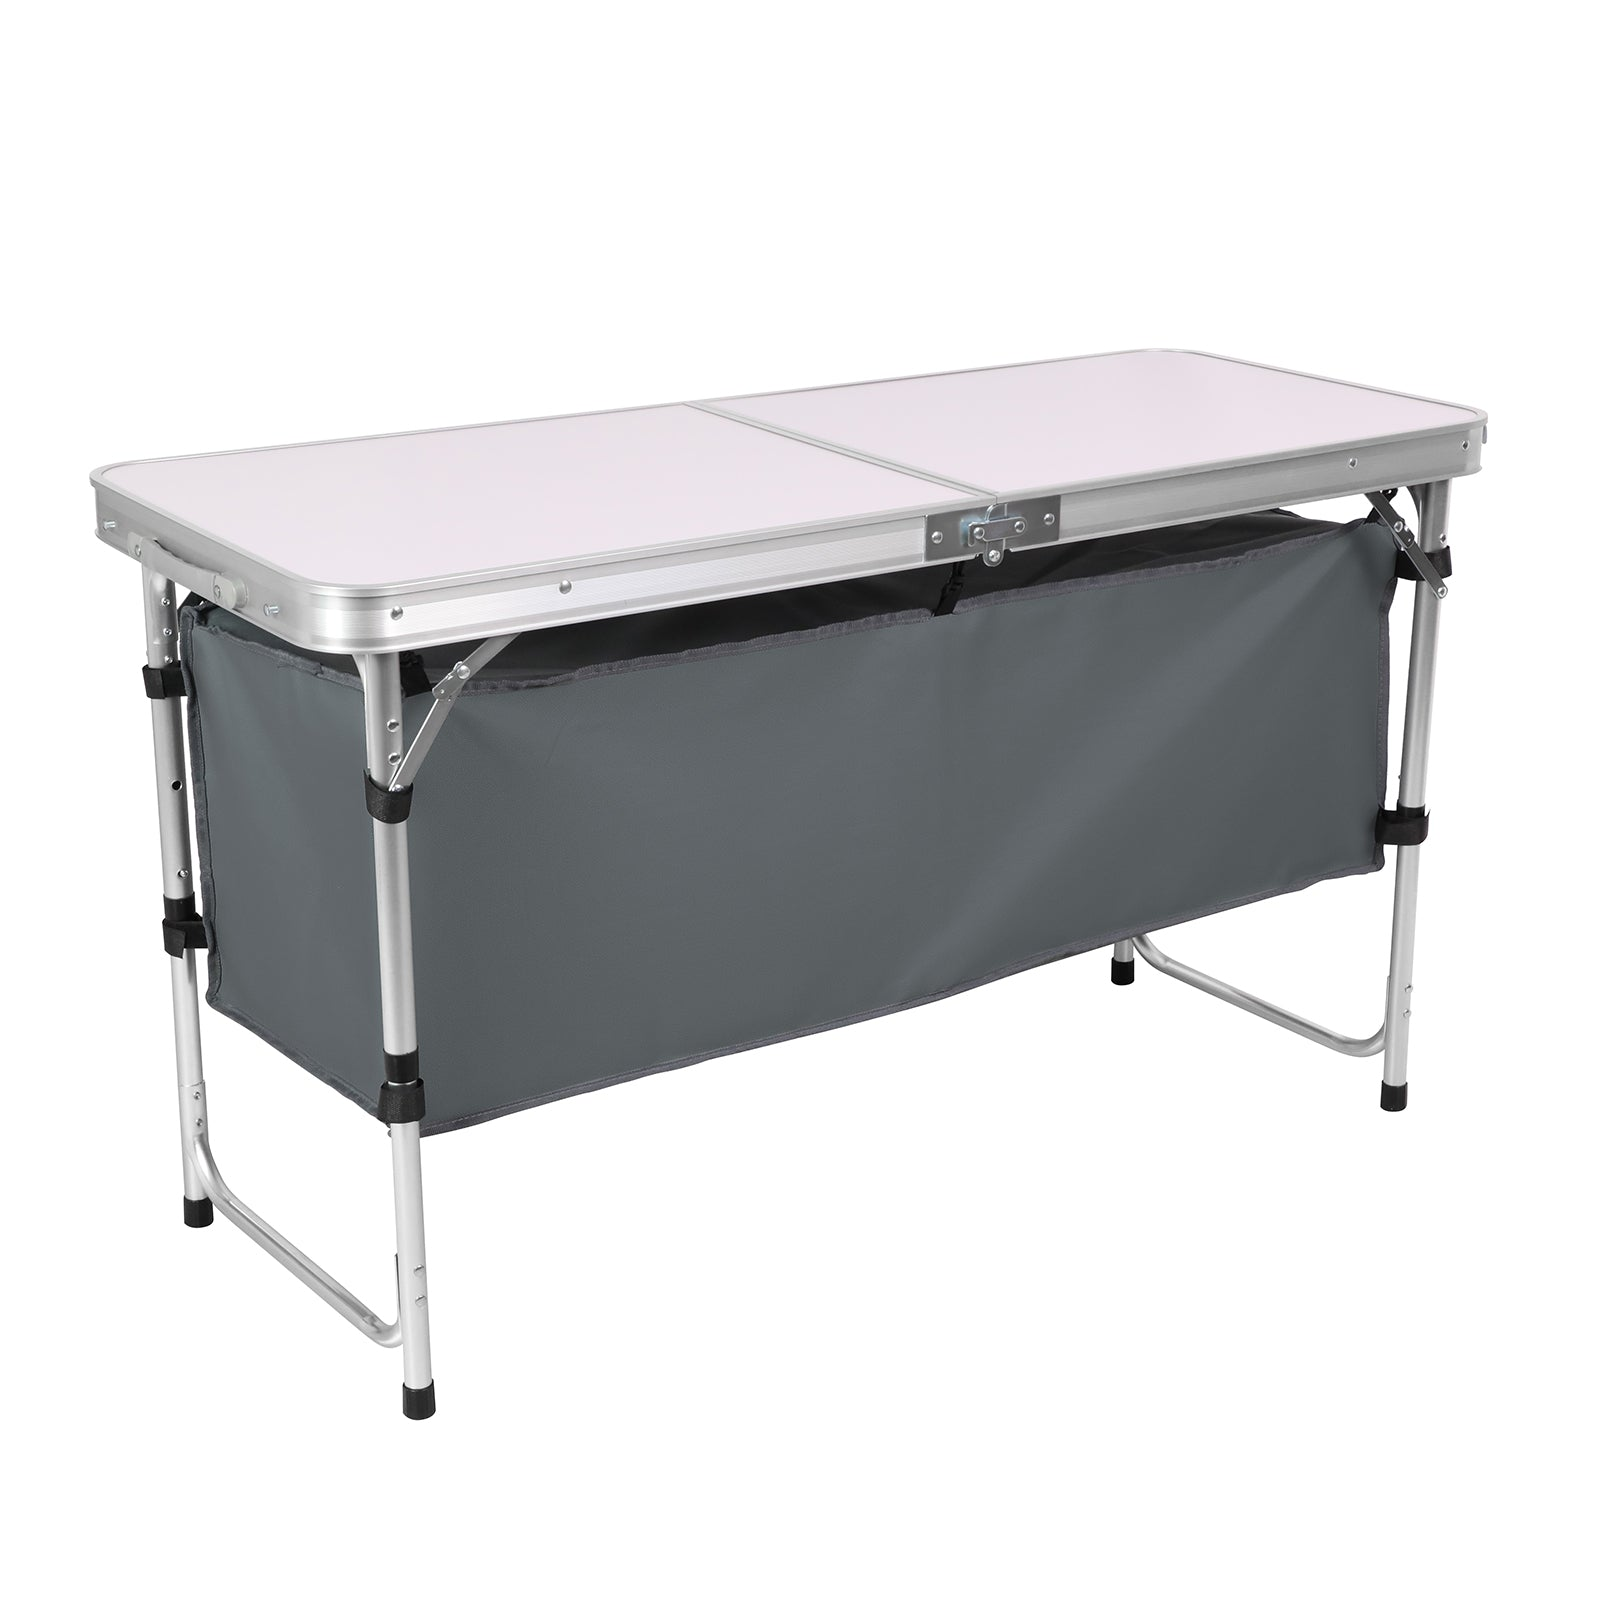 Dim Gray Folding Camping Picnic Table w/Extended Panel, Compact Aluminum Lightweight Picnic Table